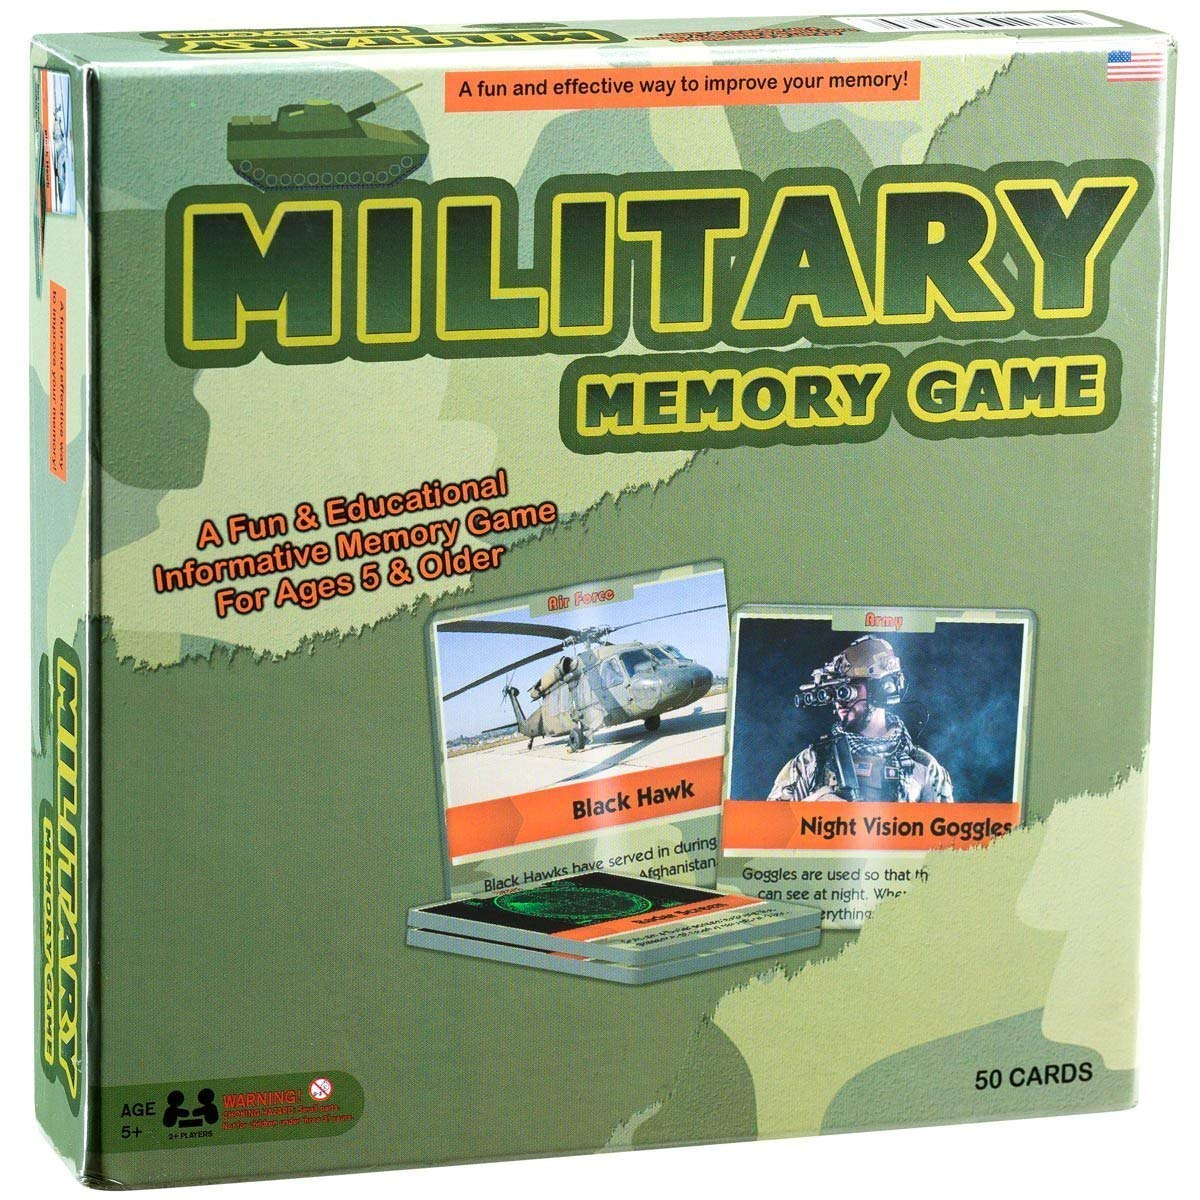 Matching Card Game - Fun and Educational Memory Game - Authentic Photos and Fascinating Facts About the U.S. Military - 50 Extra Thick Cards - Fun and Easy - Educational Memory Card Game by HSGUS